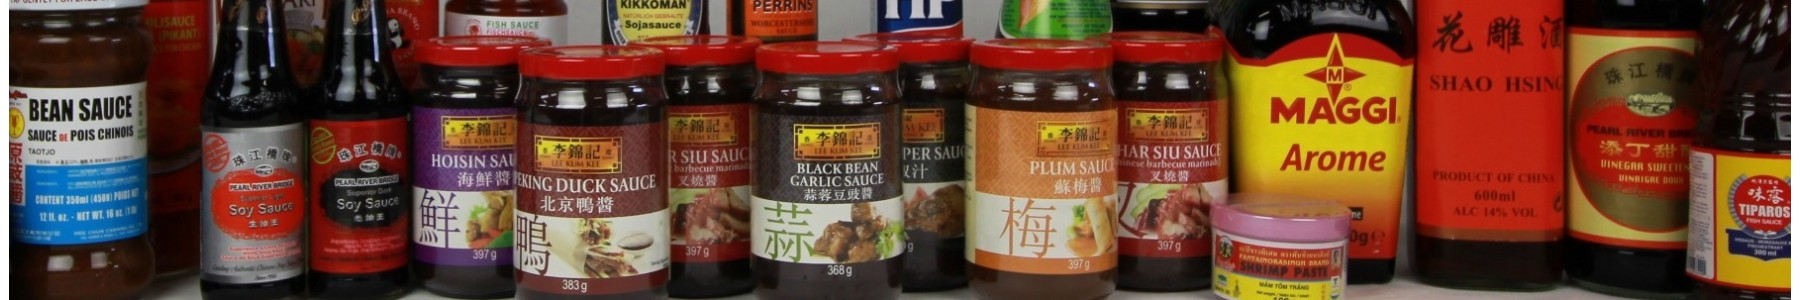 Sauces, vinagre and oil